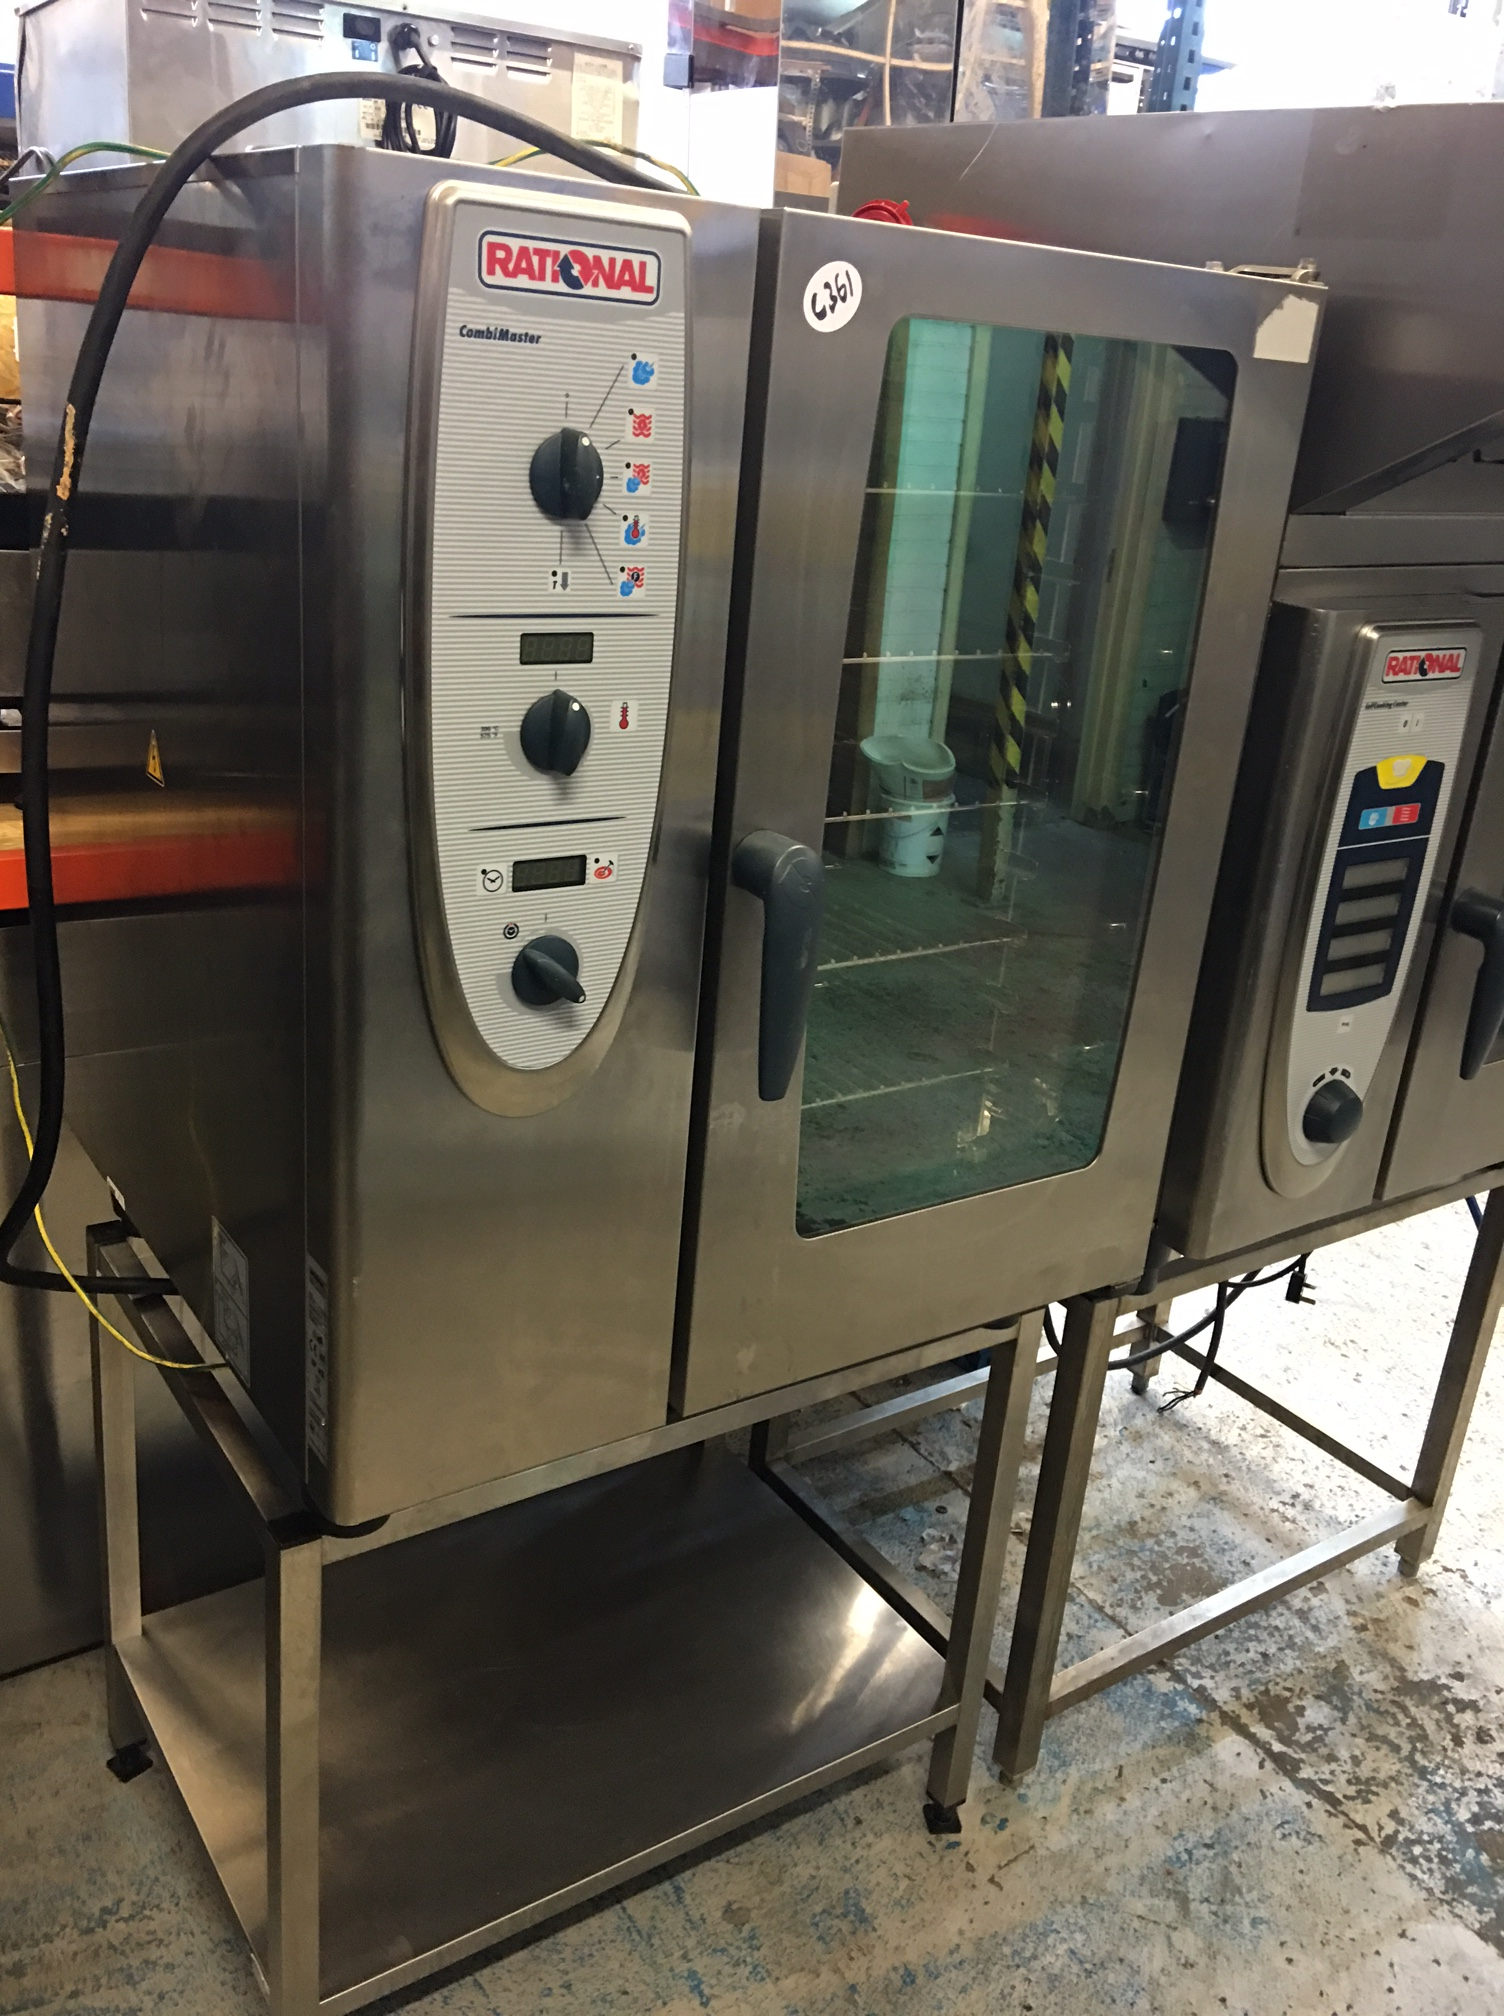 IMG_9681 rational cm 101 e combimaster 10 grid combi oven peri peri 3 phase rational cm101 wiring diagram at reclaimingppi.co